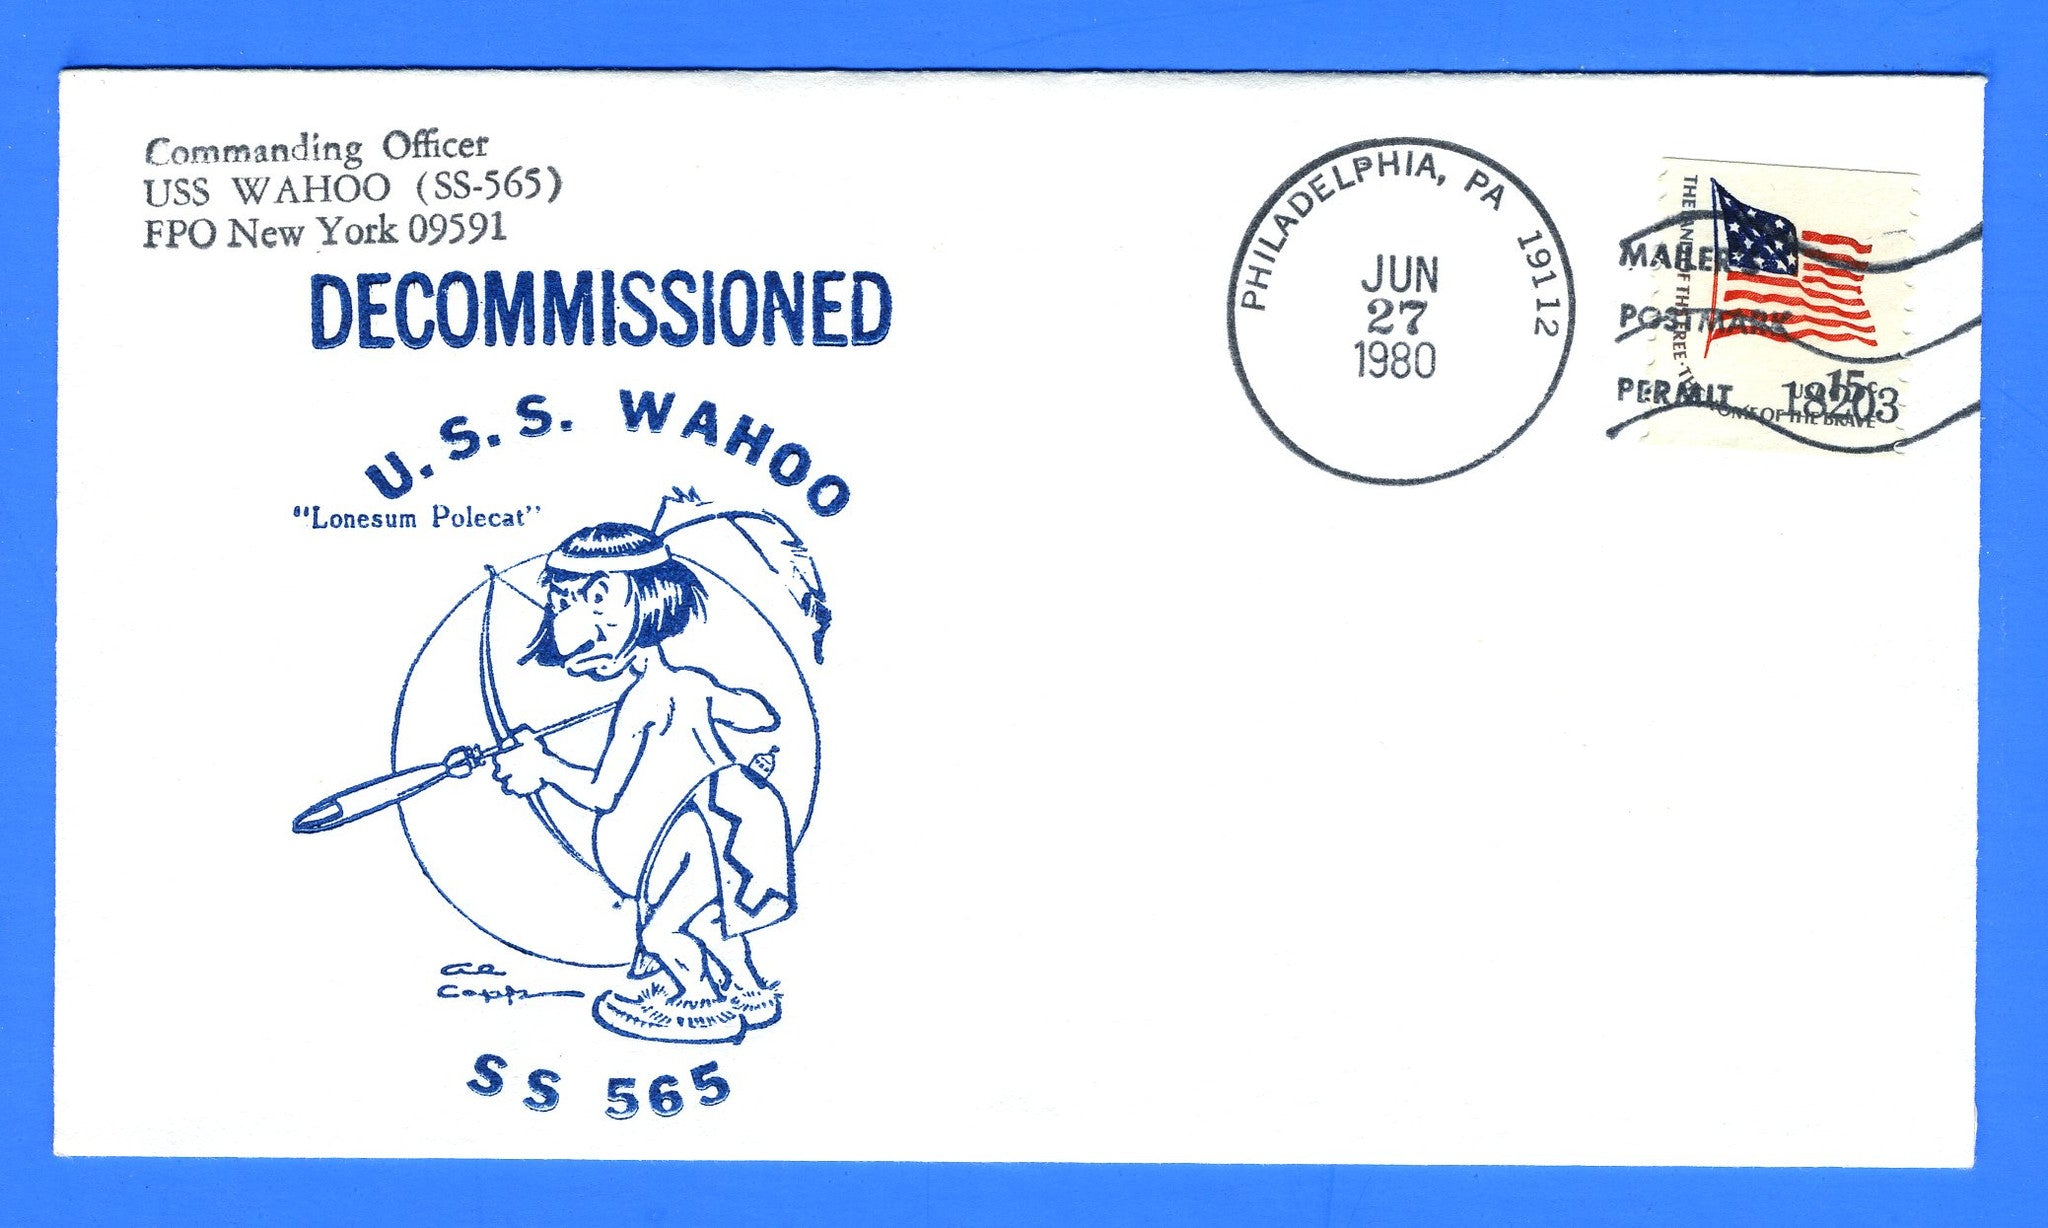 USS Wahoo SS-565 Decommissioned June 27, 1980